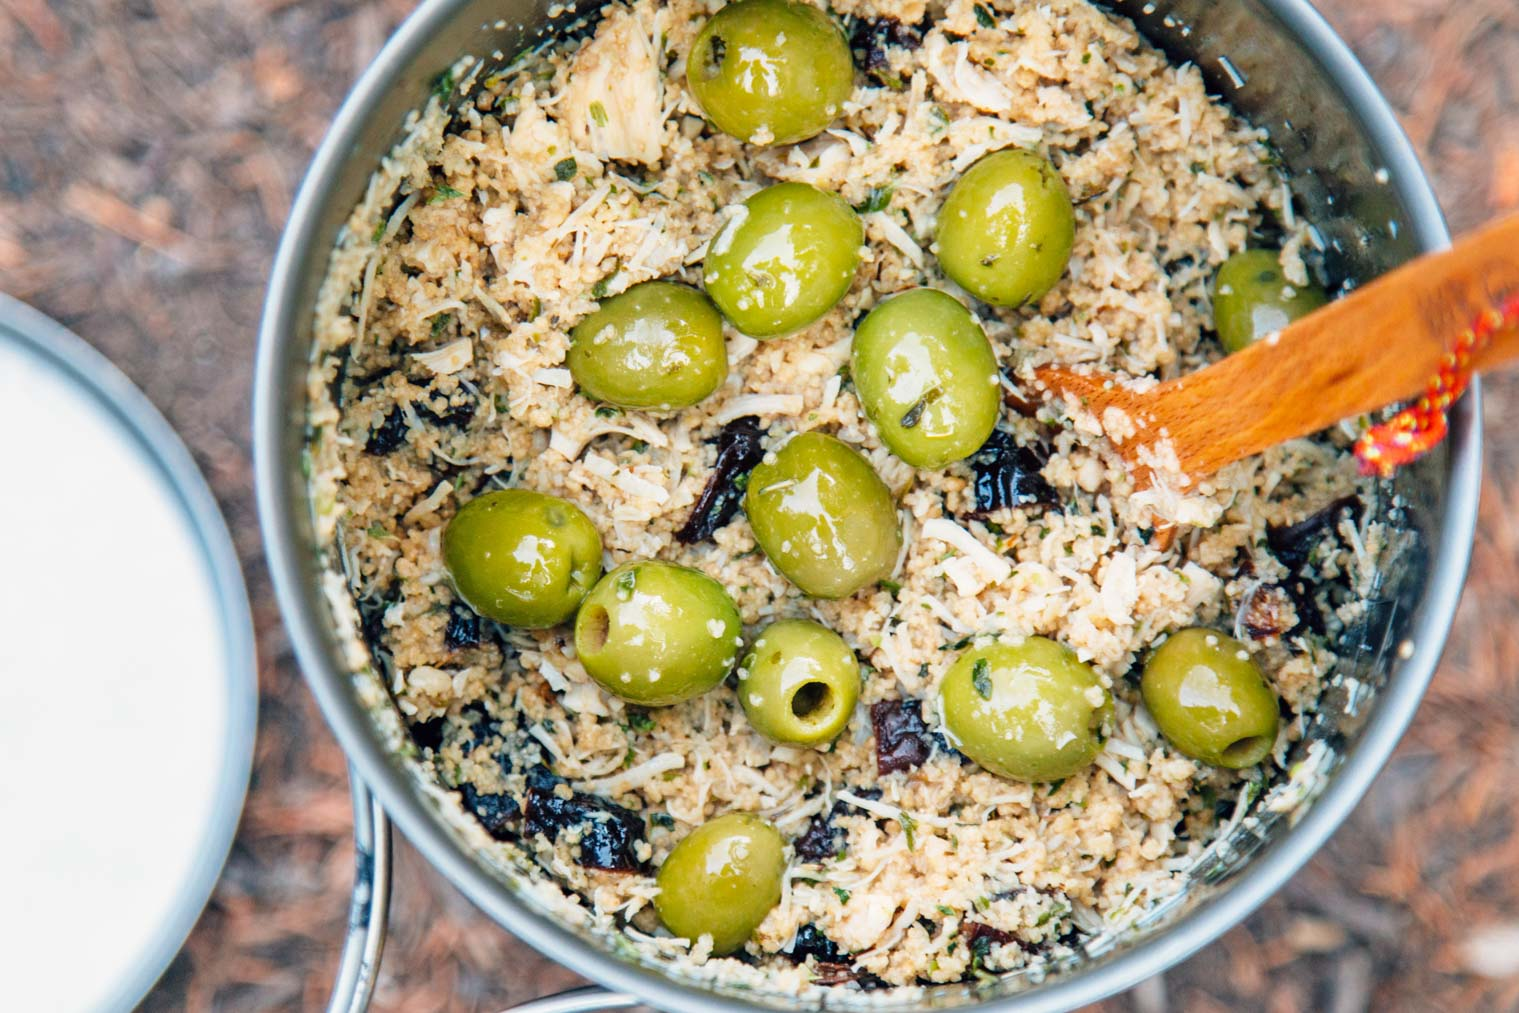 Chicken marbella and green olives in a backpacking pot